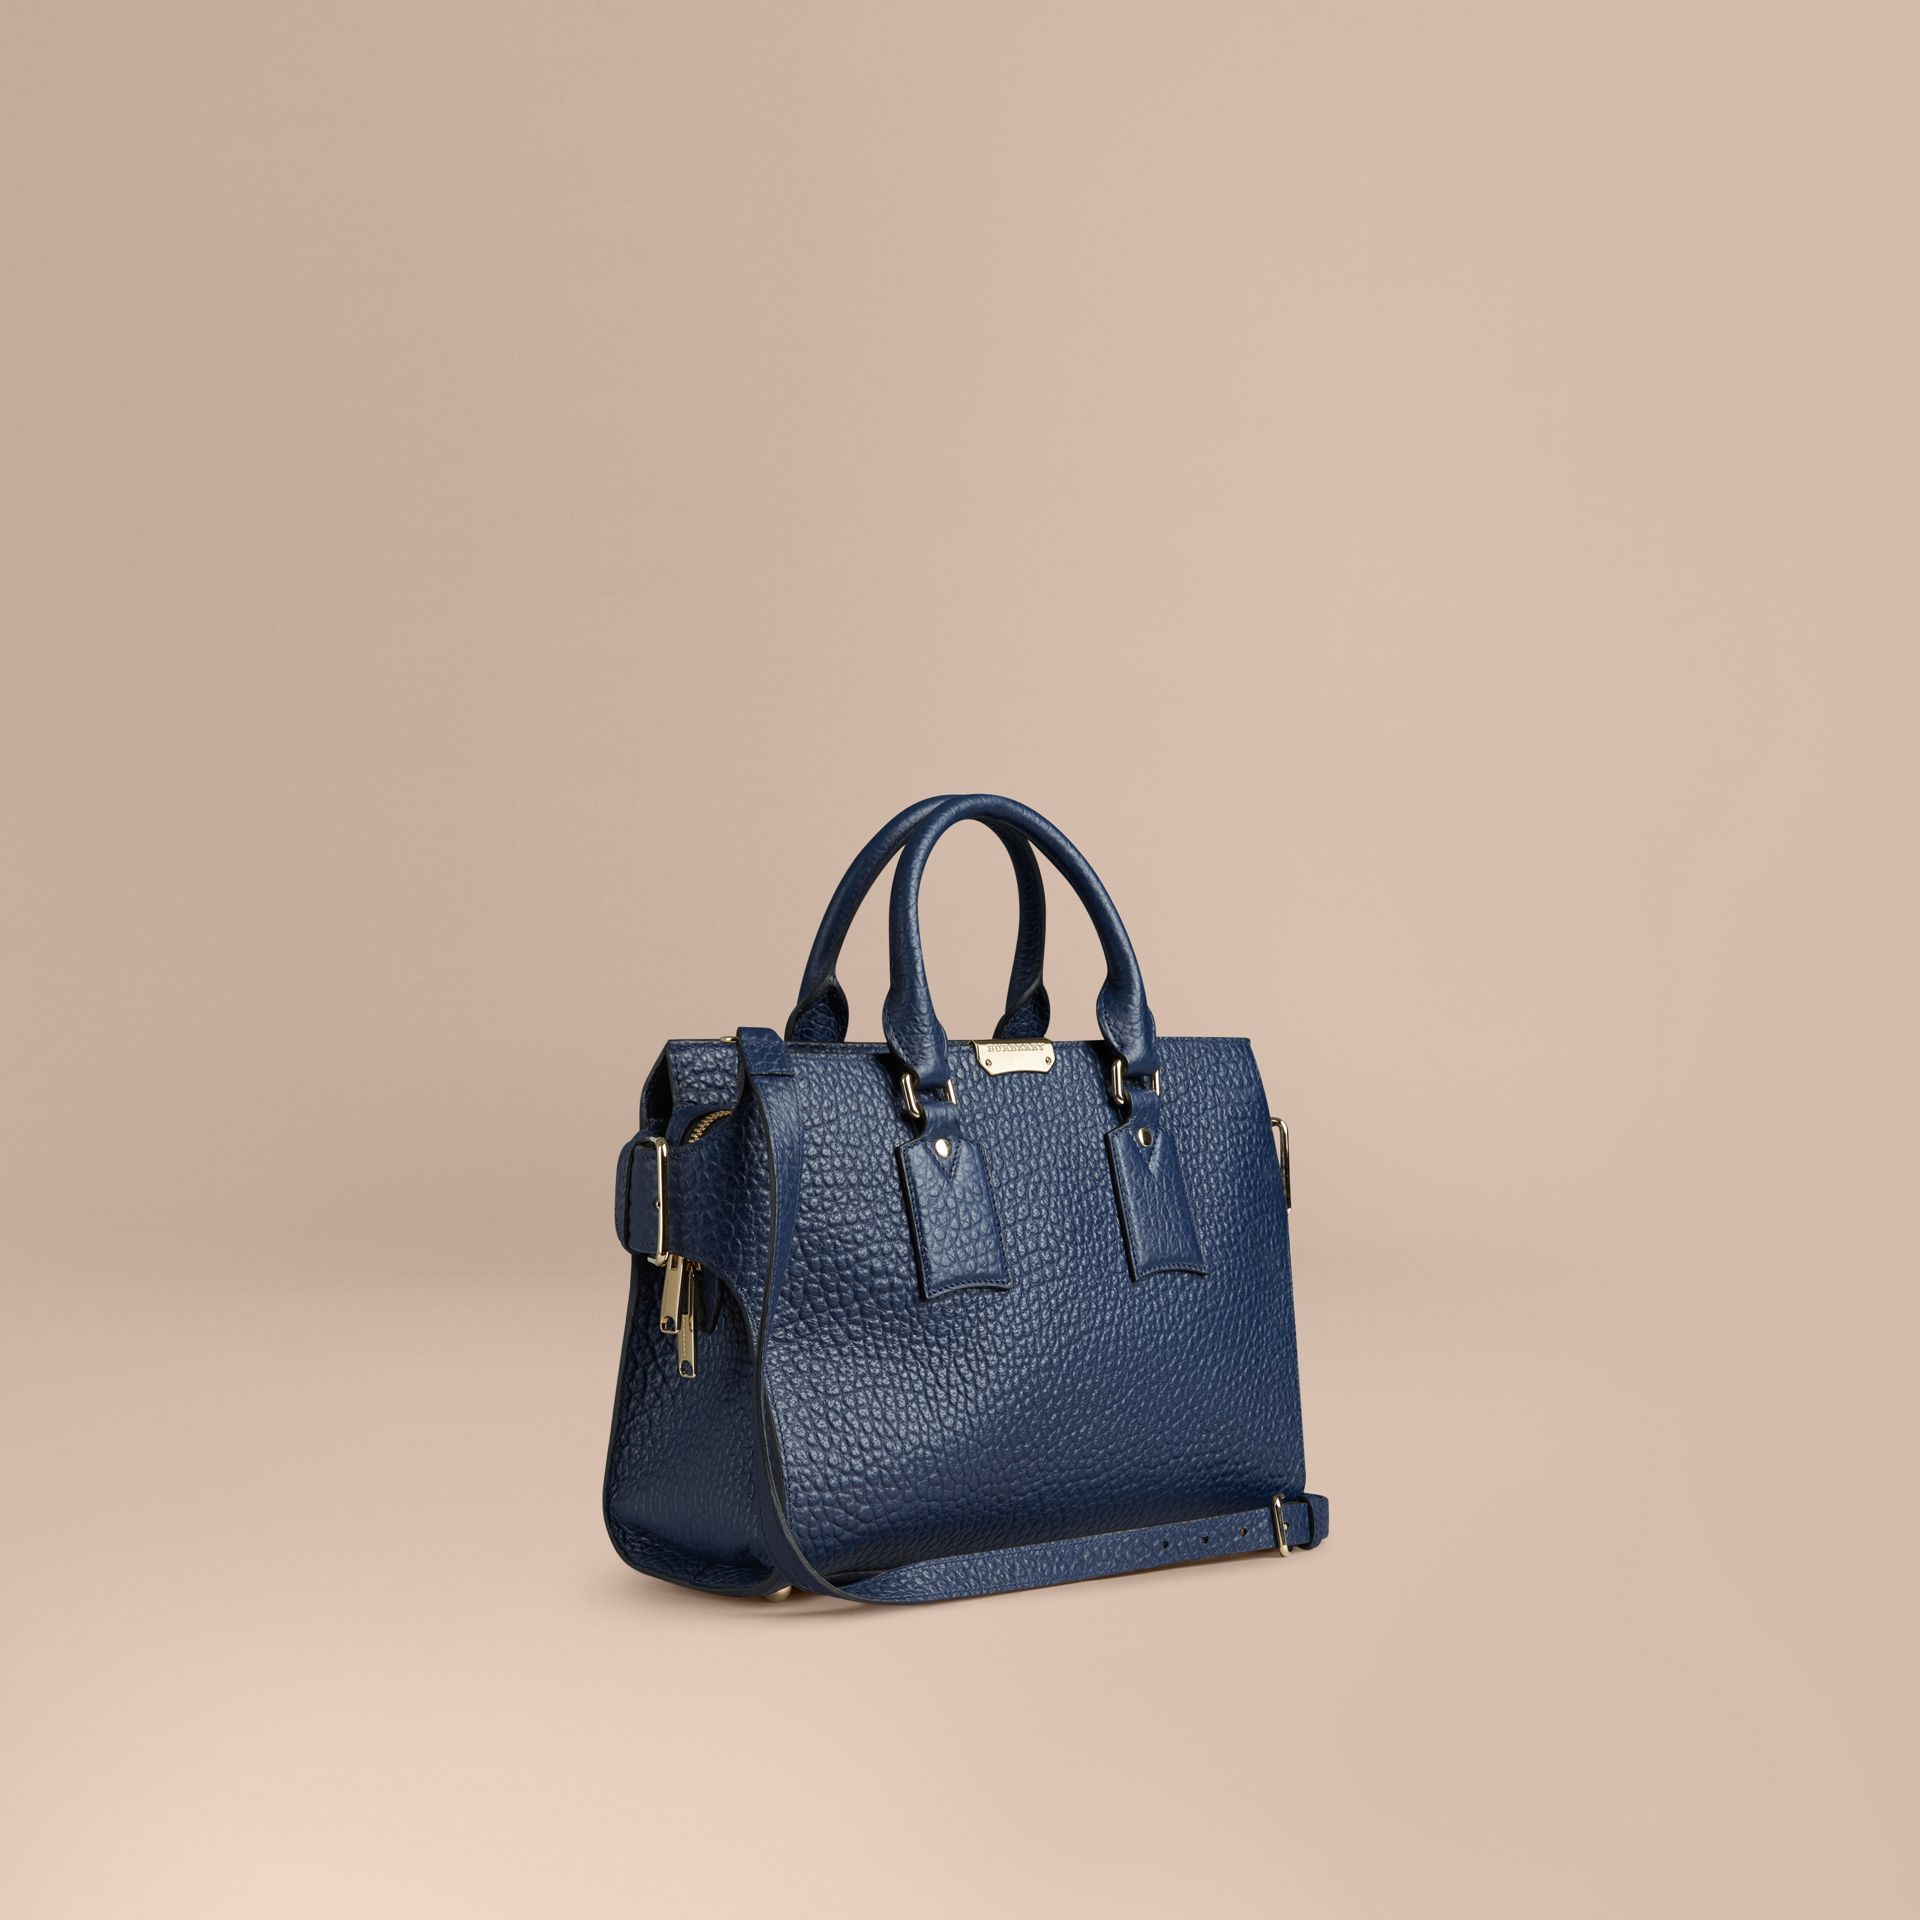 Bleu carbone Sac medium The Clifton en cuir grainé emblématique Bleu Carbone - photo de la galerie 1